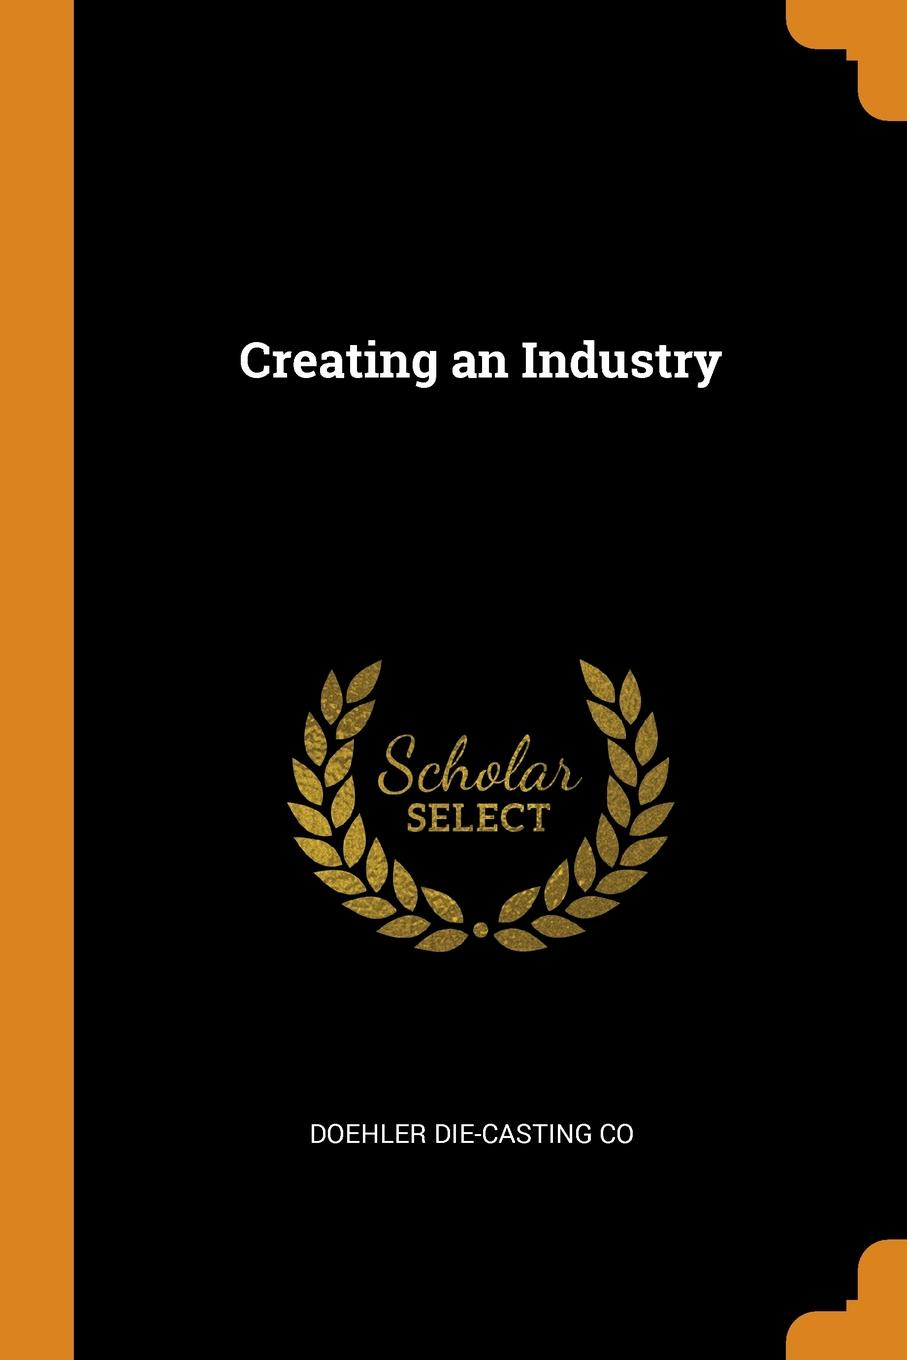 Doehler Die-casting Co. Creating an Industry